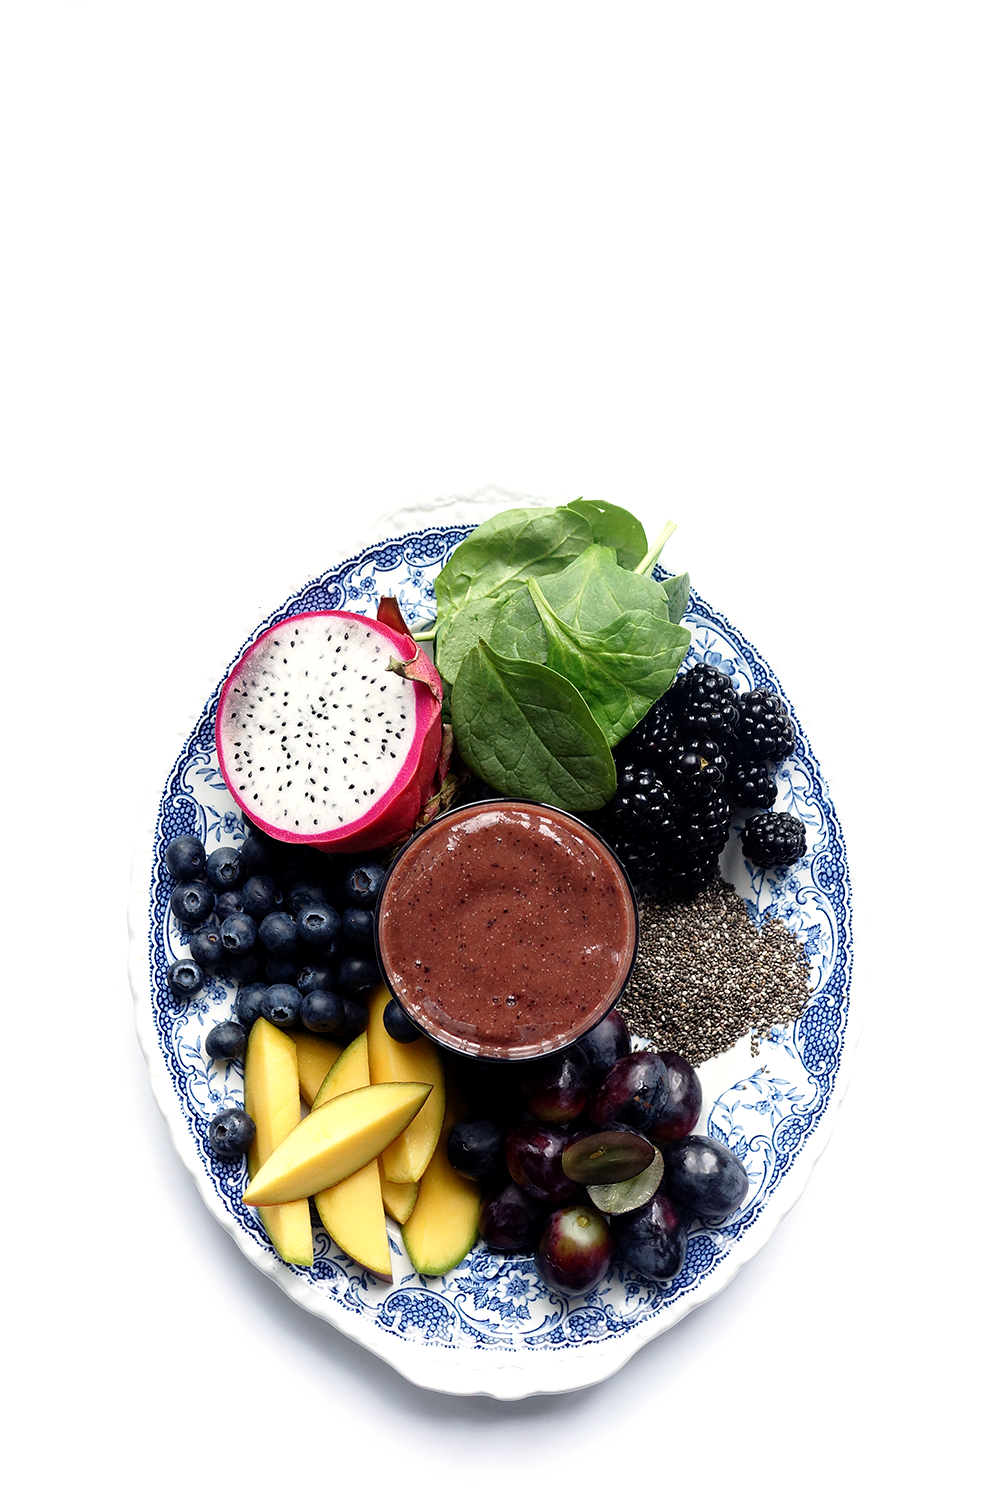 barely-there-beauty-blog-healthy-recipes-smoothie-glowing-skin-food-photography